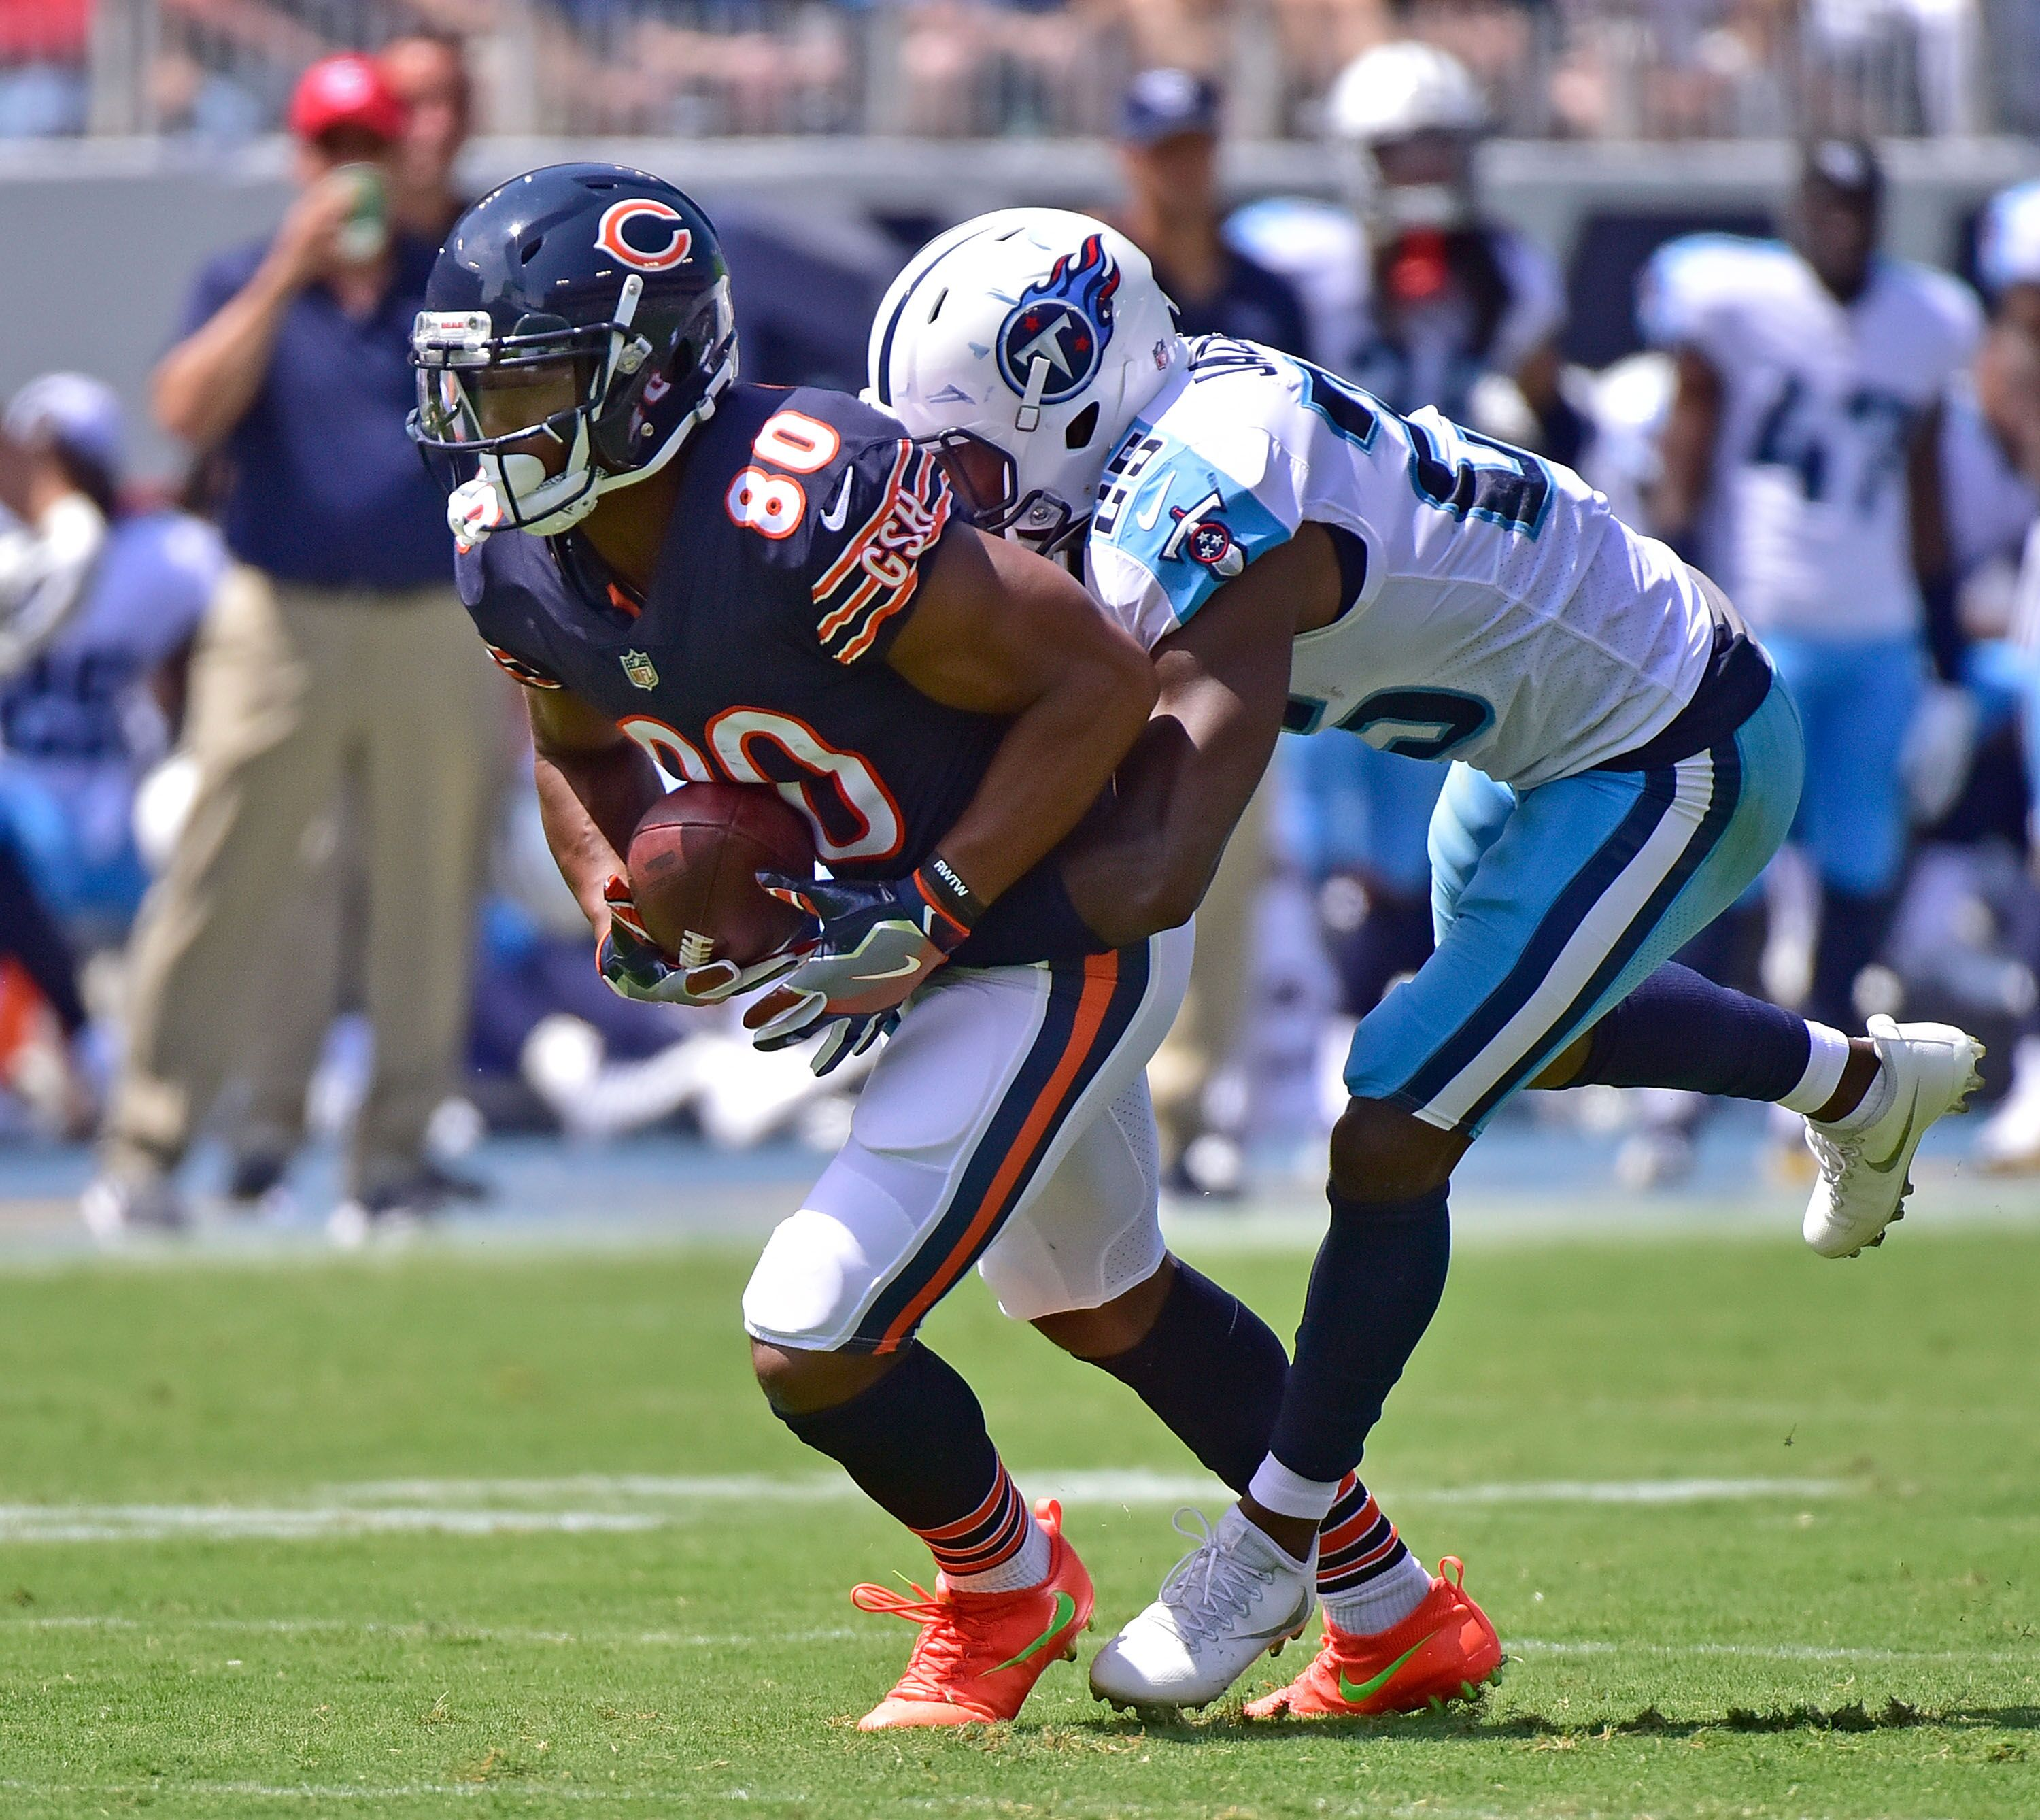 Chicago Bears Roster: Five Chicago Bears Players To Watch Against The Cleveland